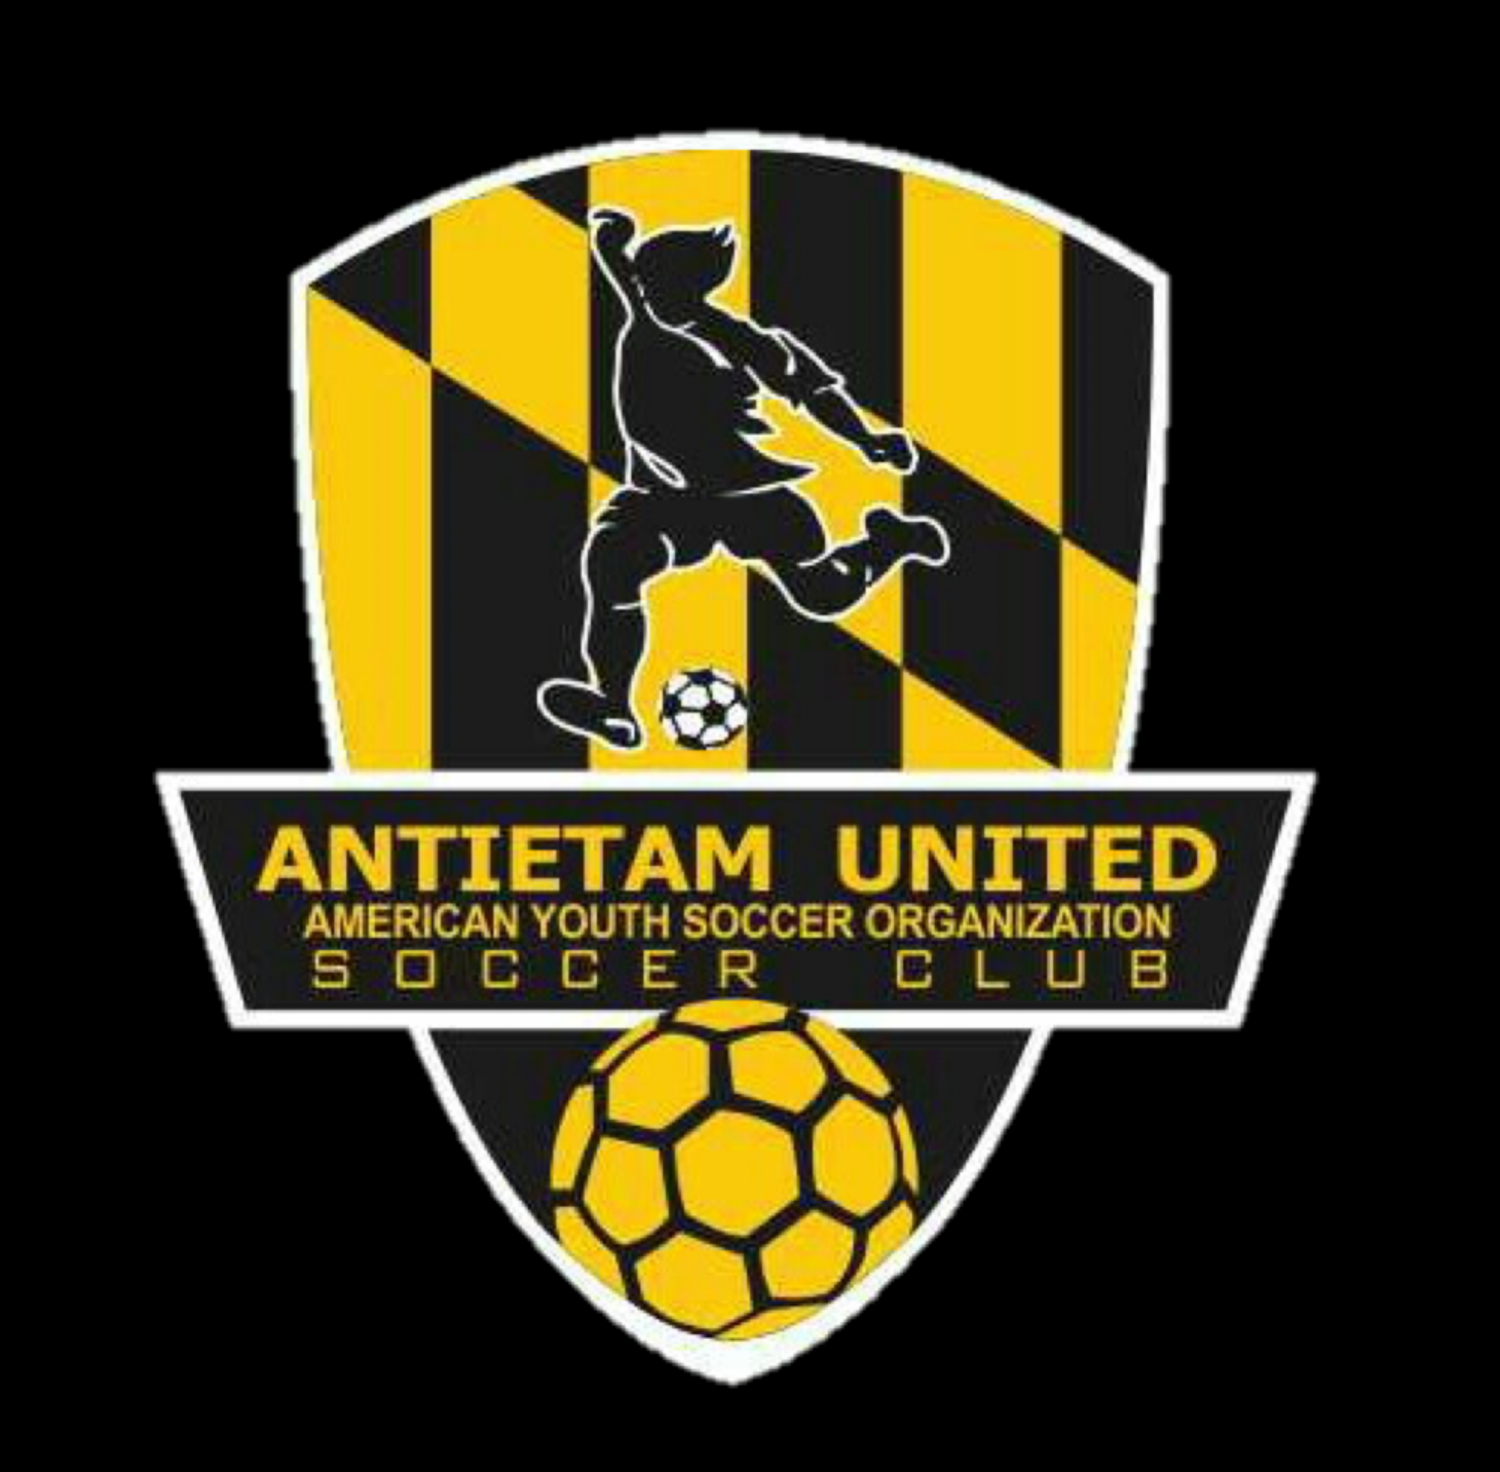 Antietam United Soccer Club